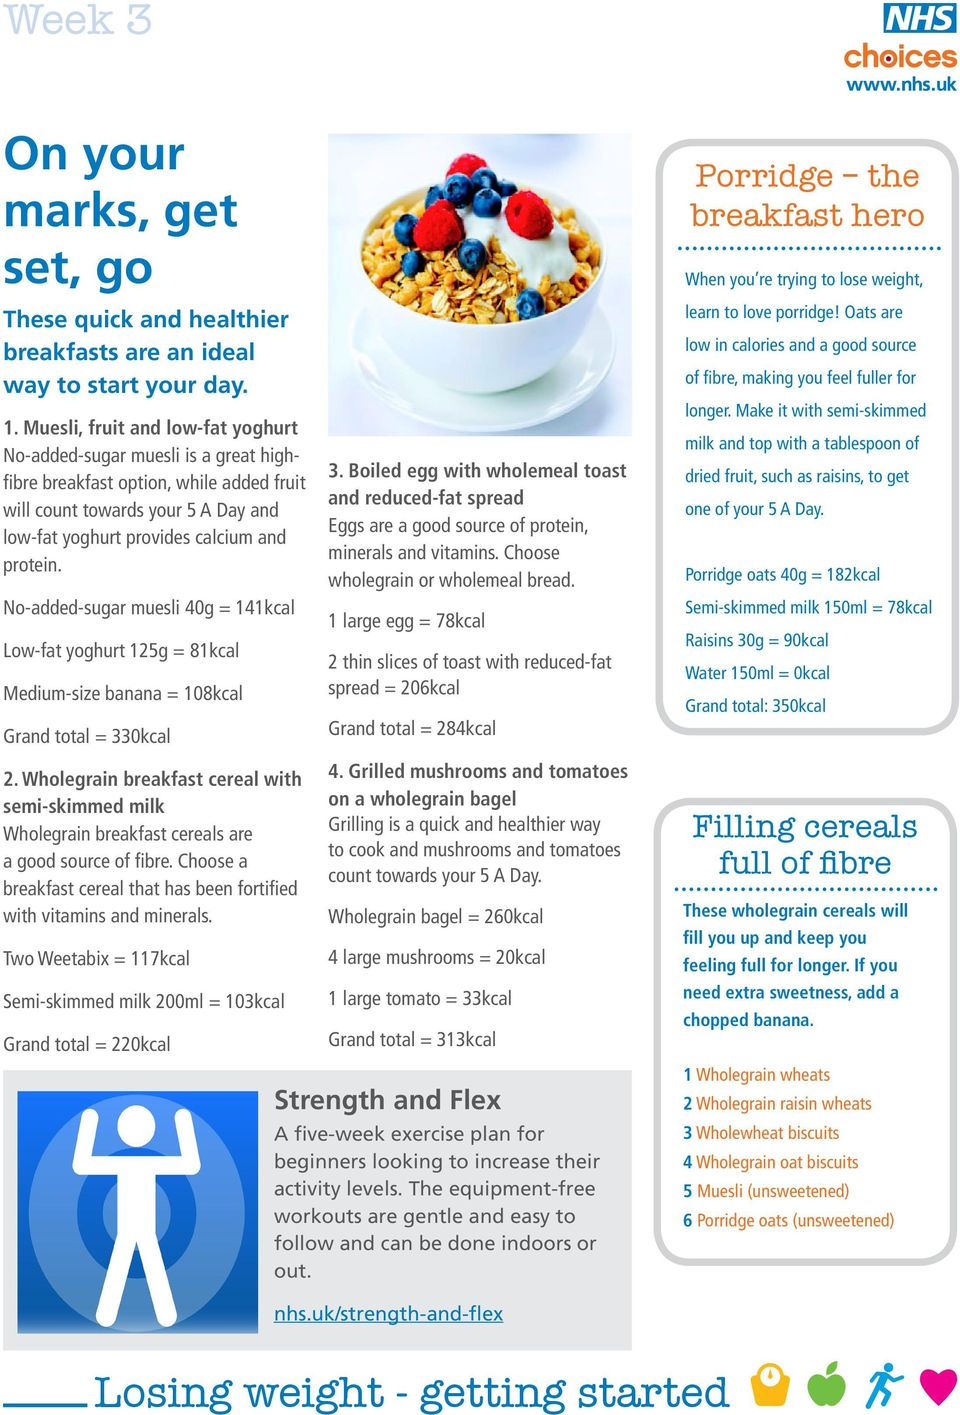 No-added-sugar muesli 40g = 141kcal Low-fat yoghurt 125g = 81kcal Medium-size banana = 108kcal Grand total = 330kcal 2.